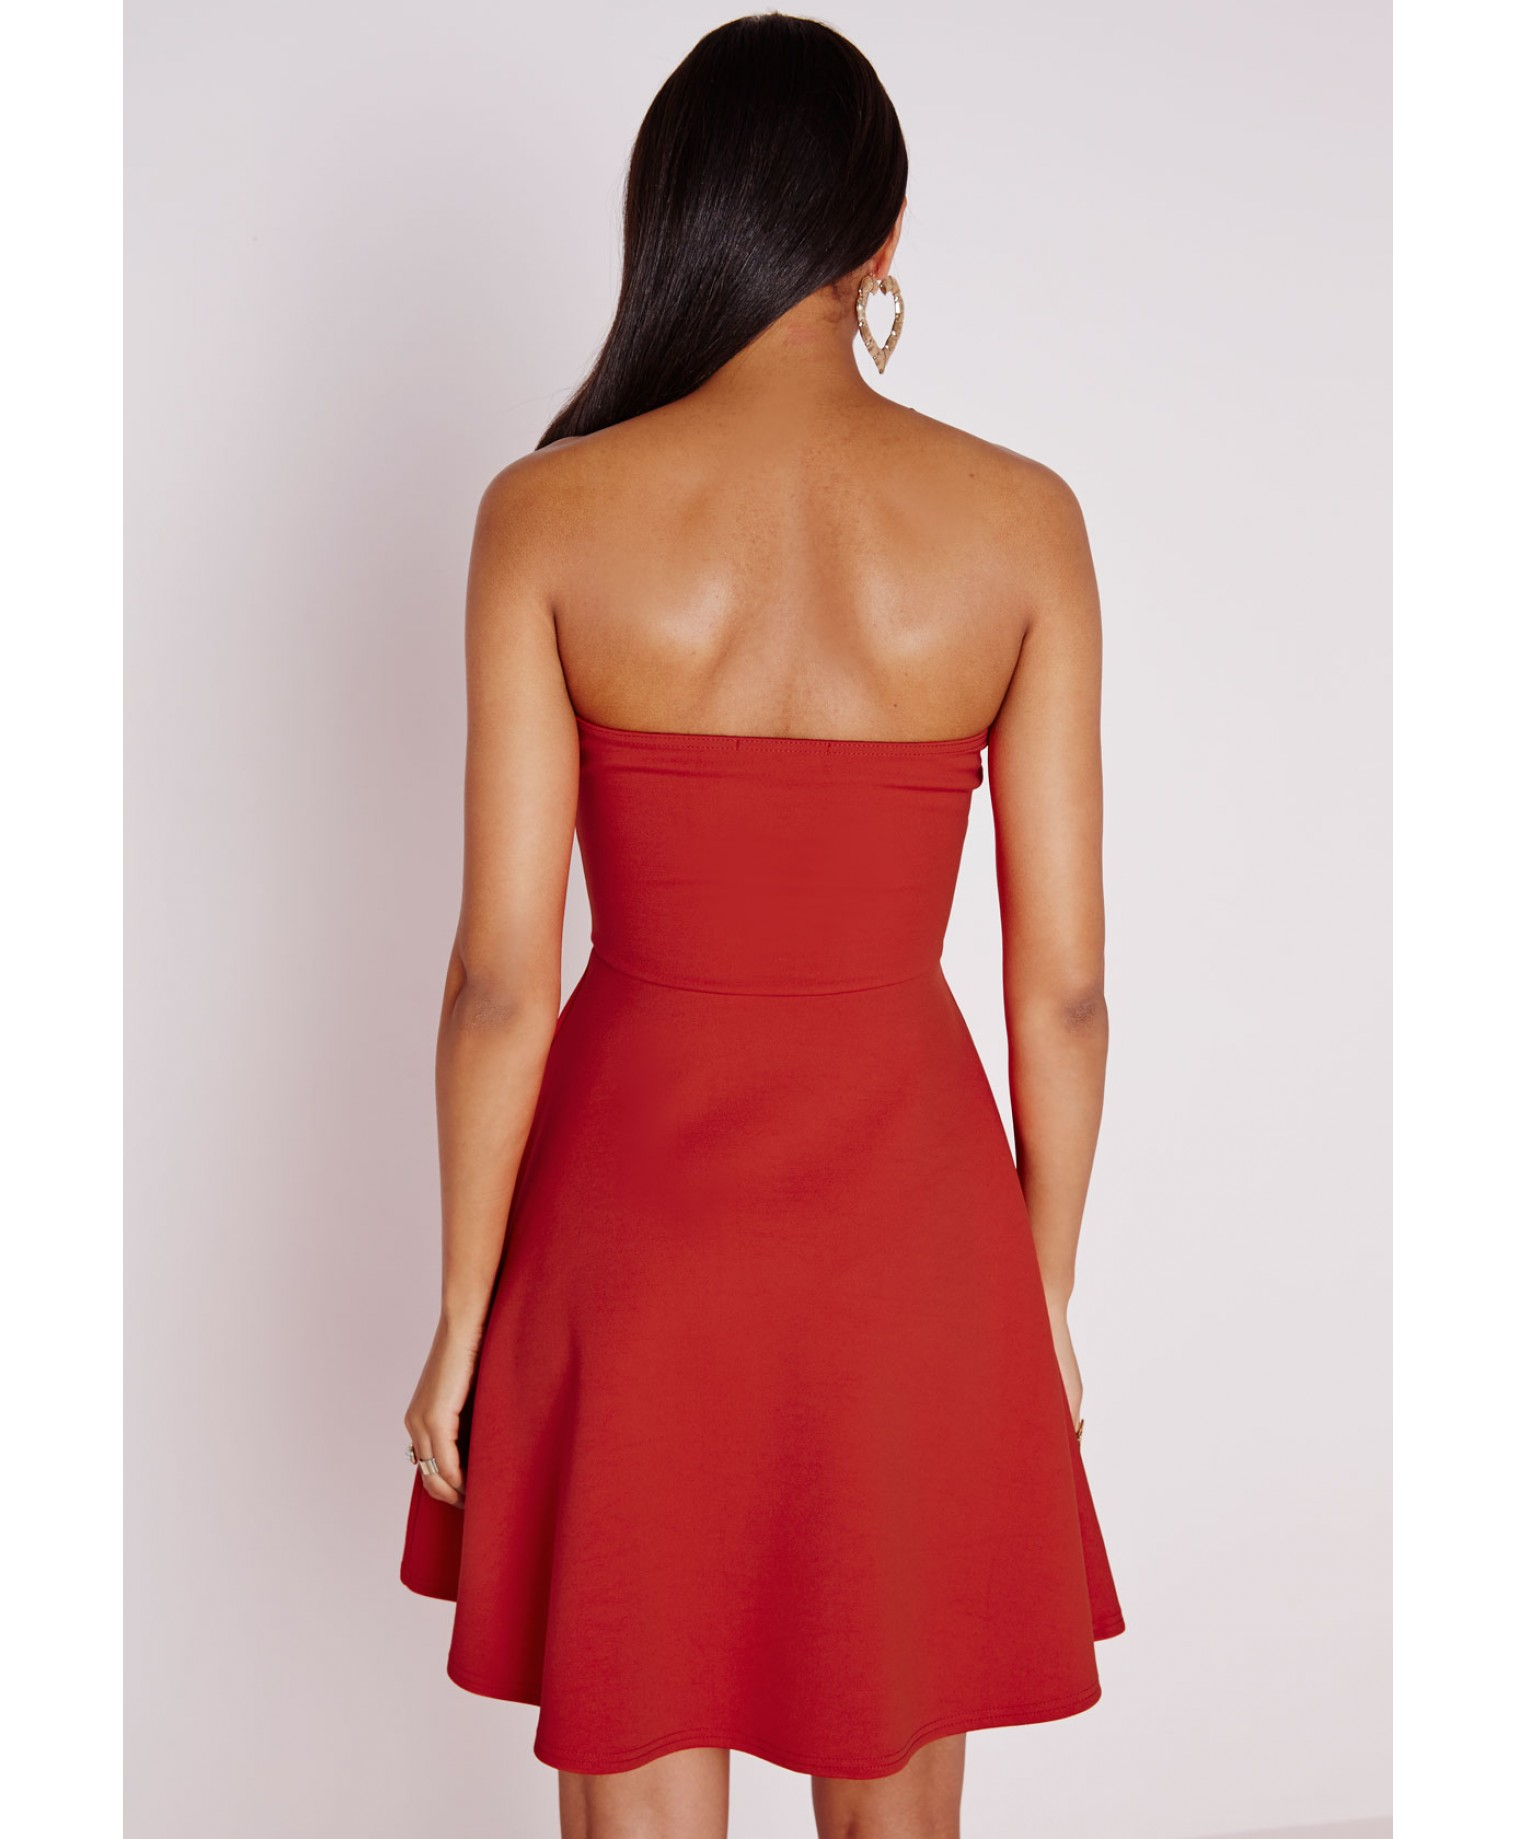 ee225b6f27 ... brand new 65b0e d0b25 Missguided Scuba Plunge Skater Dress Red in Red -  Lyst ...